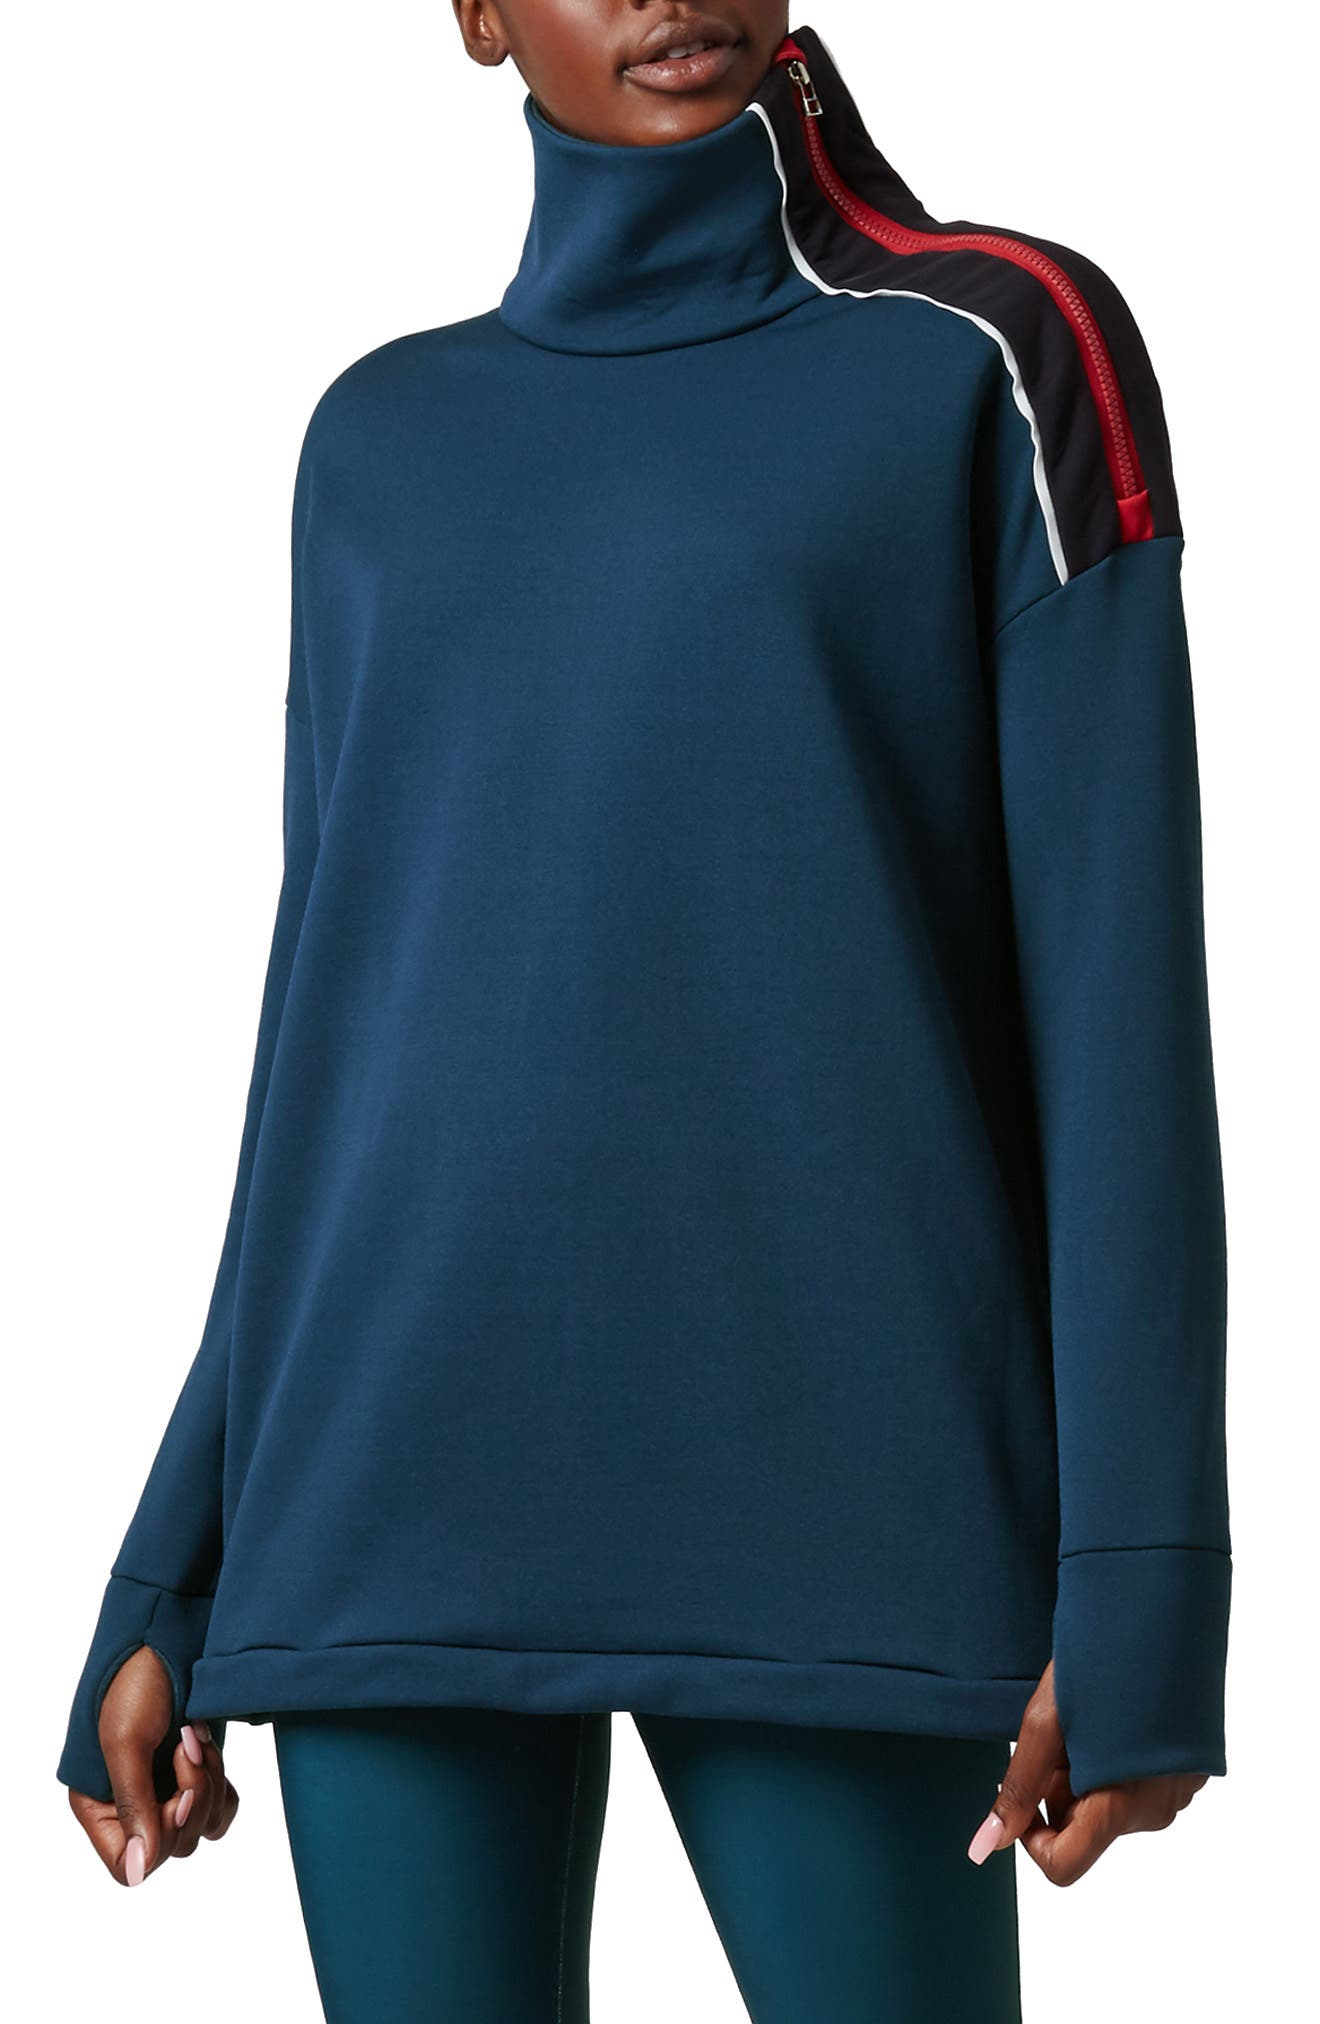 Infield Thermal Pullover,                             Main thumbnail 1, color,                             400